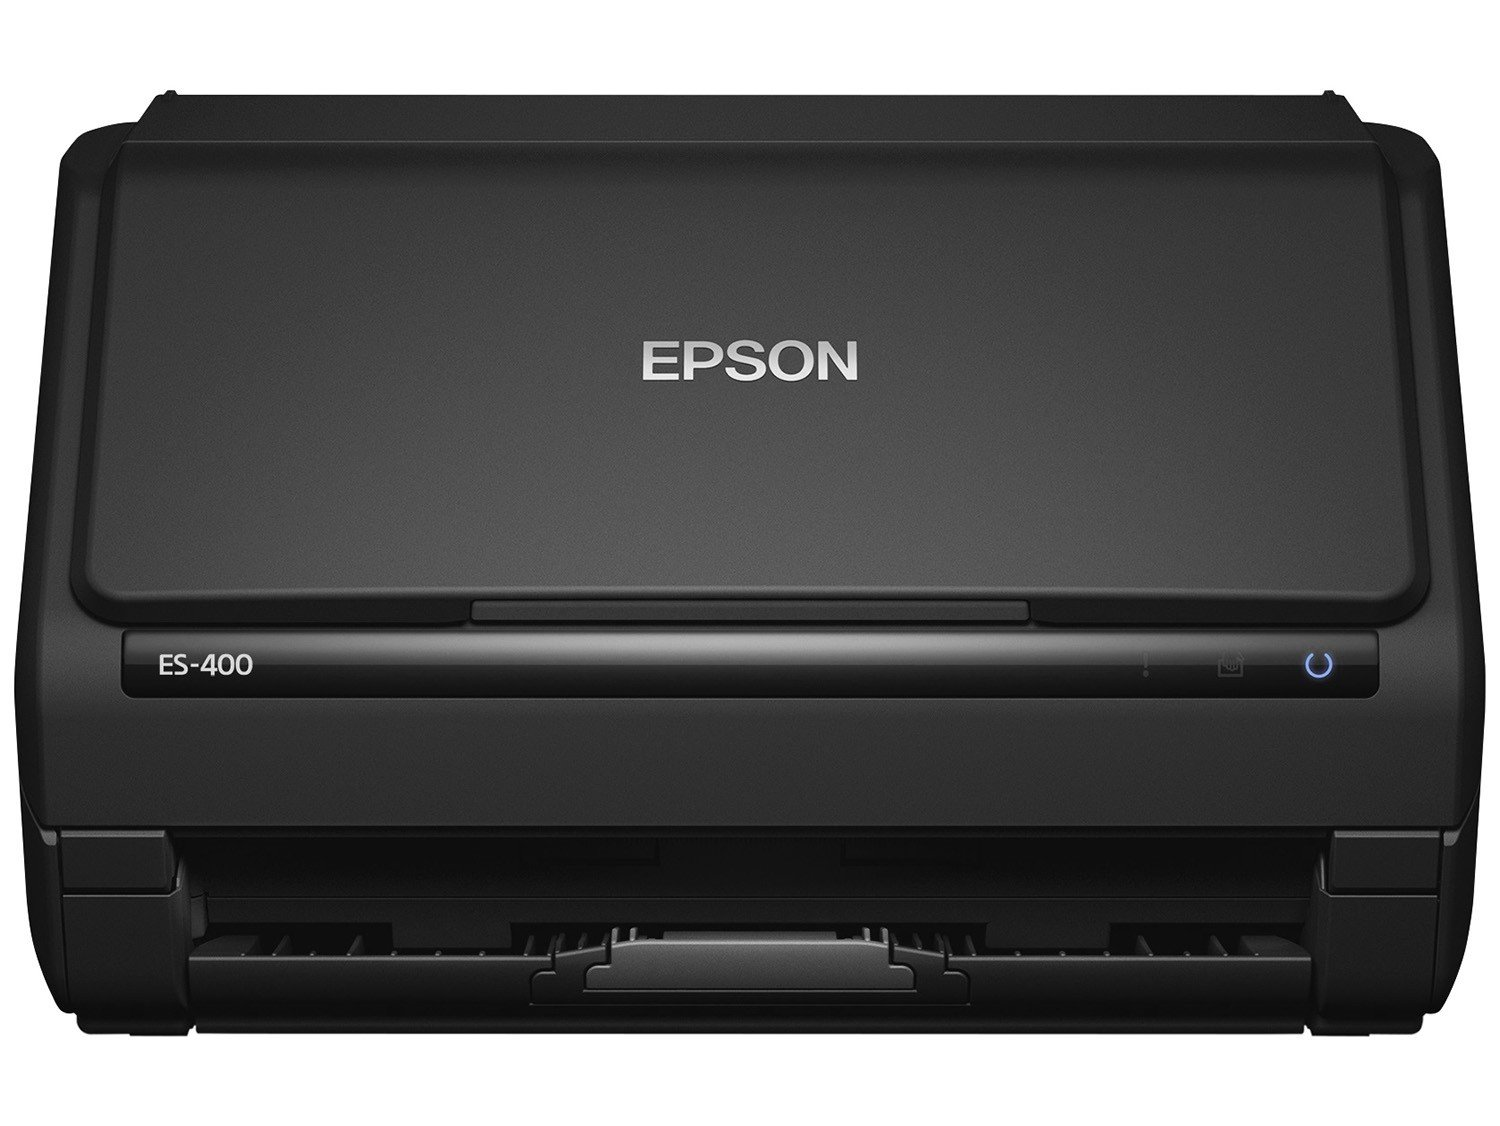 Foto 2 - Scanner de Mesa Epson WorkForce ES400 - 1200dpi